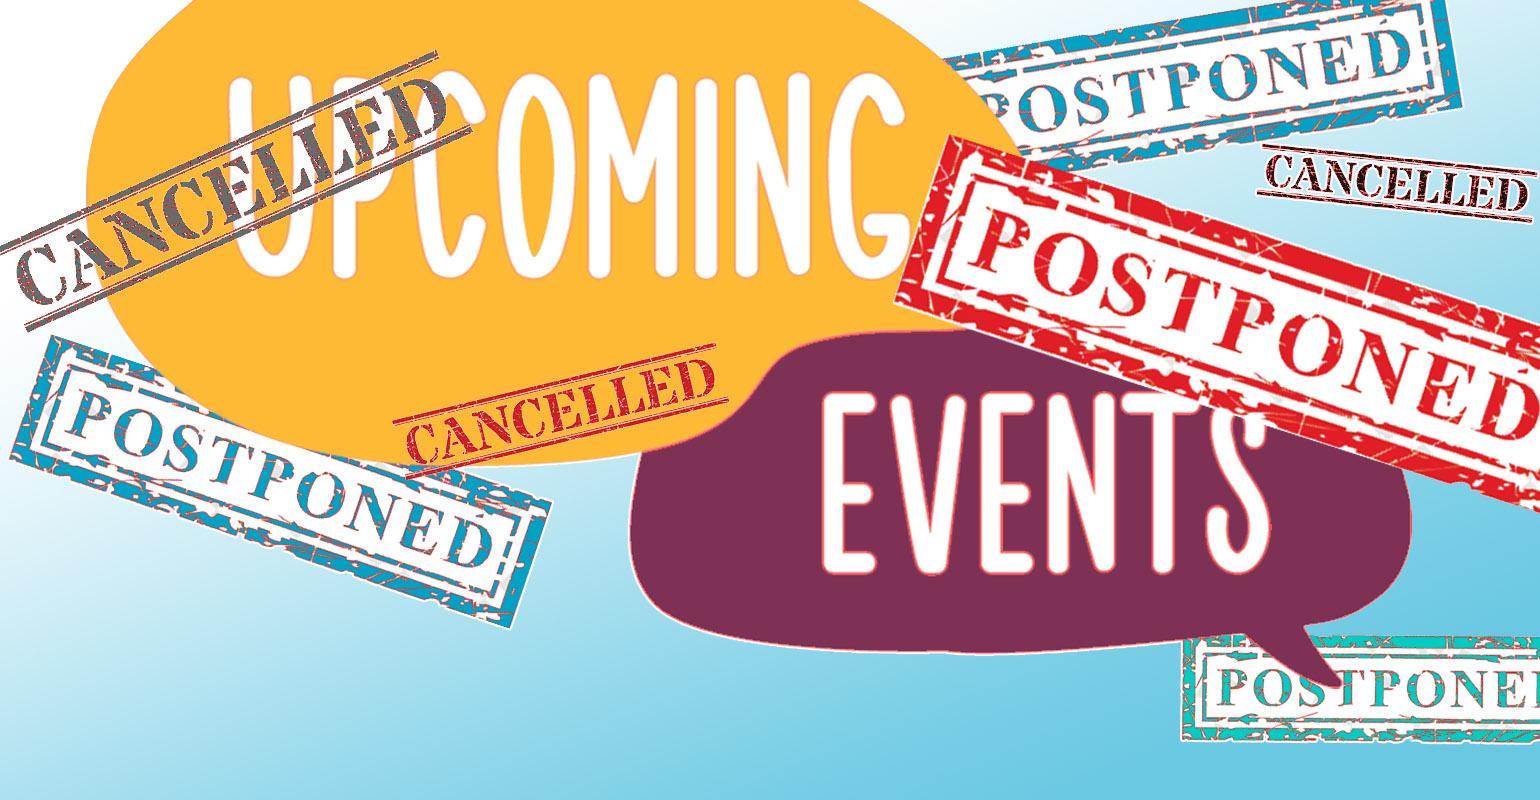 In-Person Events Have Been Postponed Due to the COVID-19 Pandemic